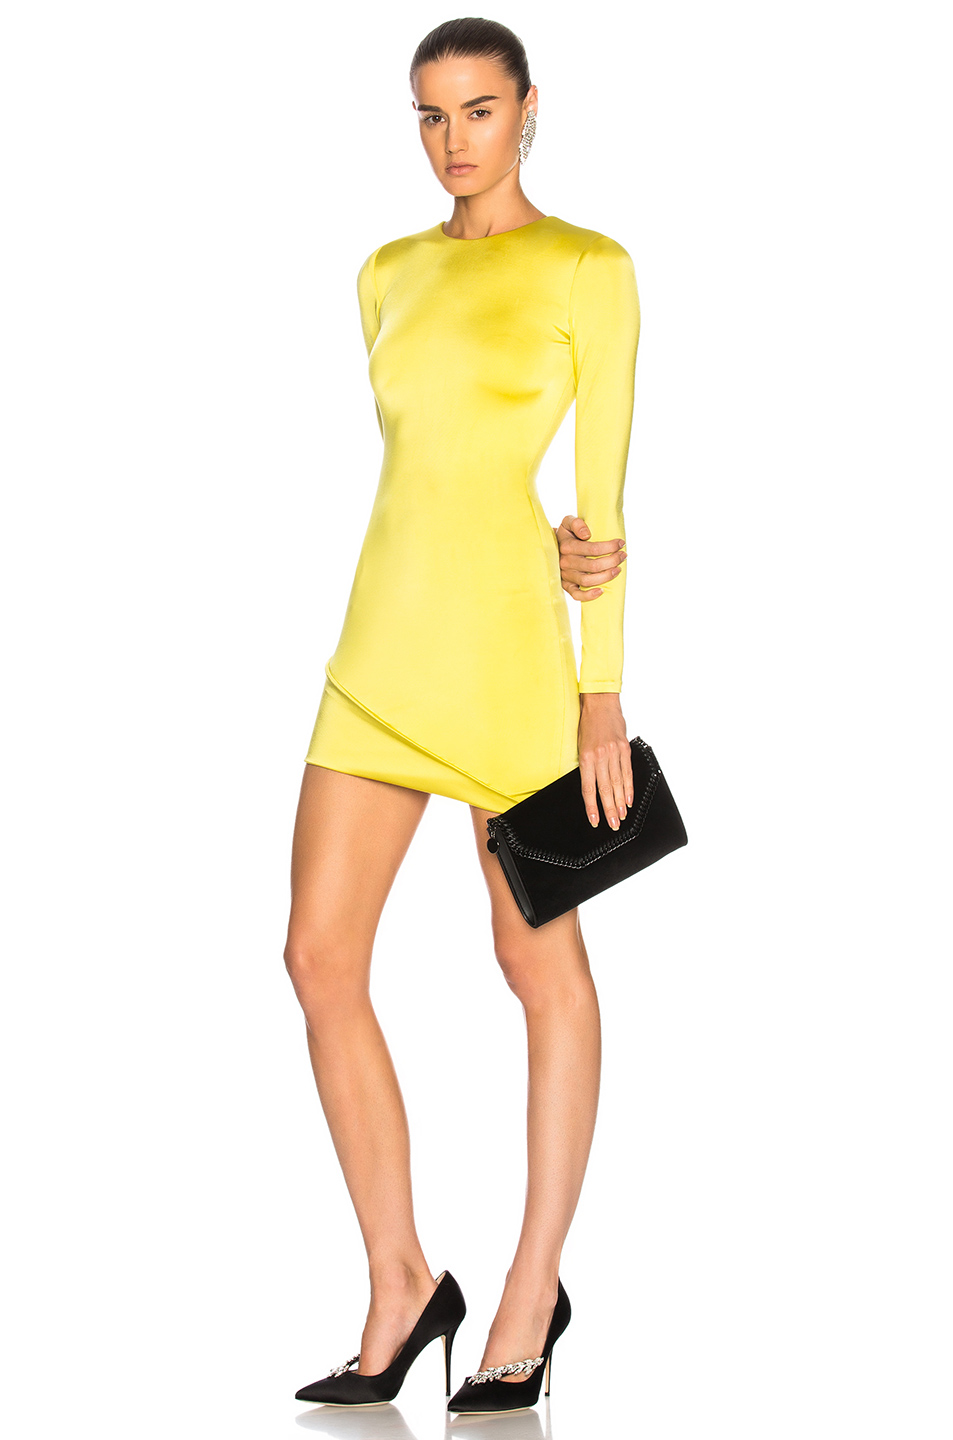 e6beba9b2c5 Buy Original Cushnie et Ochs Asymmetrical Hem Long Sleeve Mini Dress ...